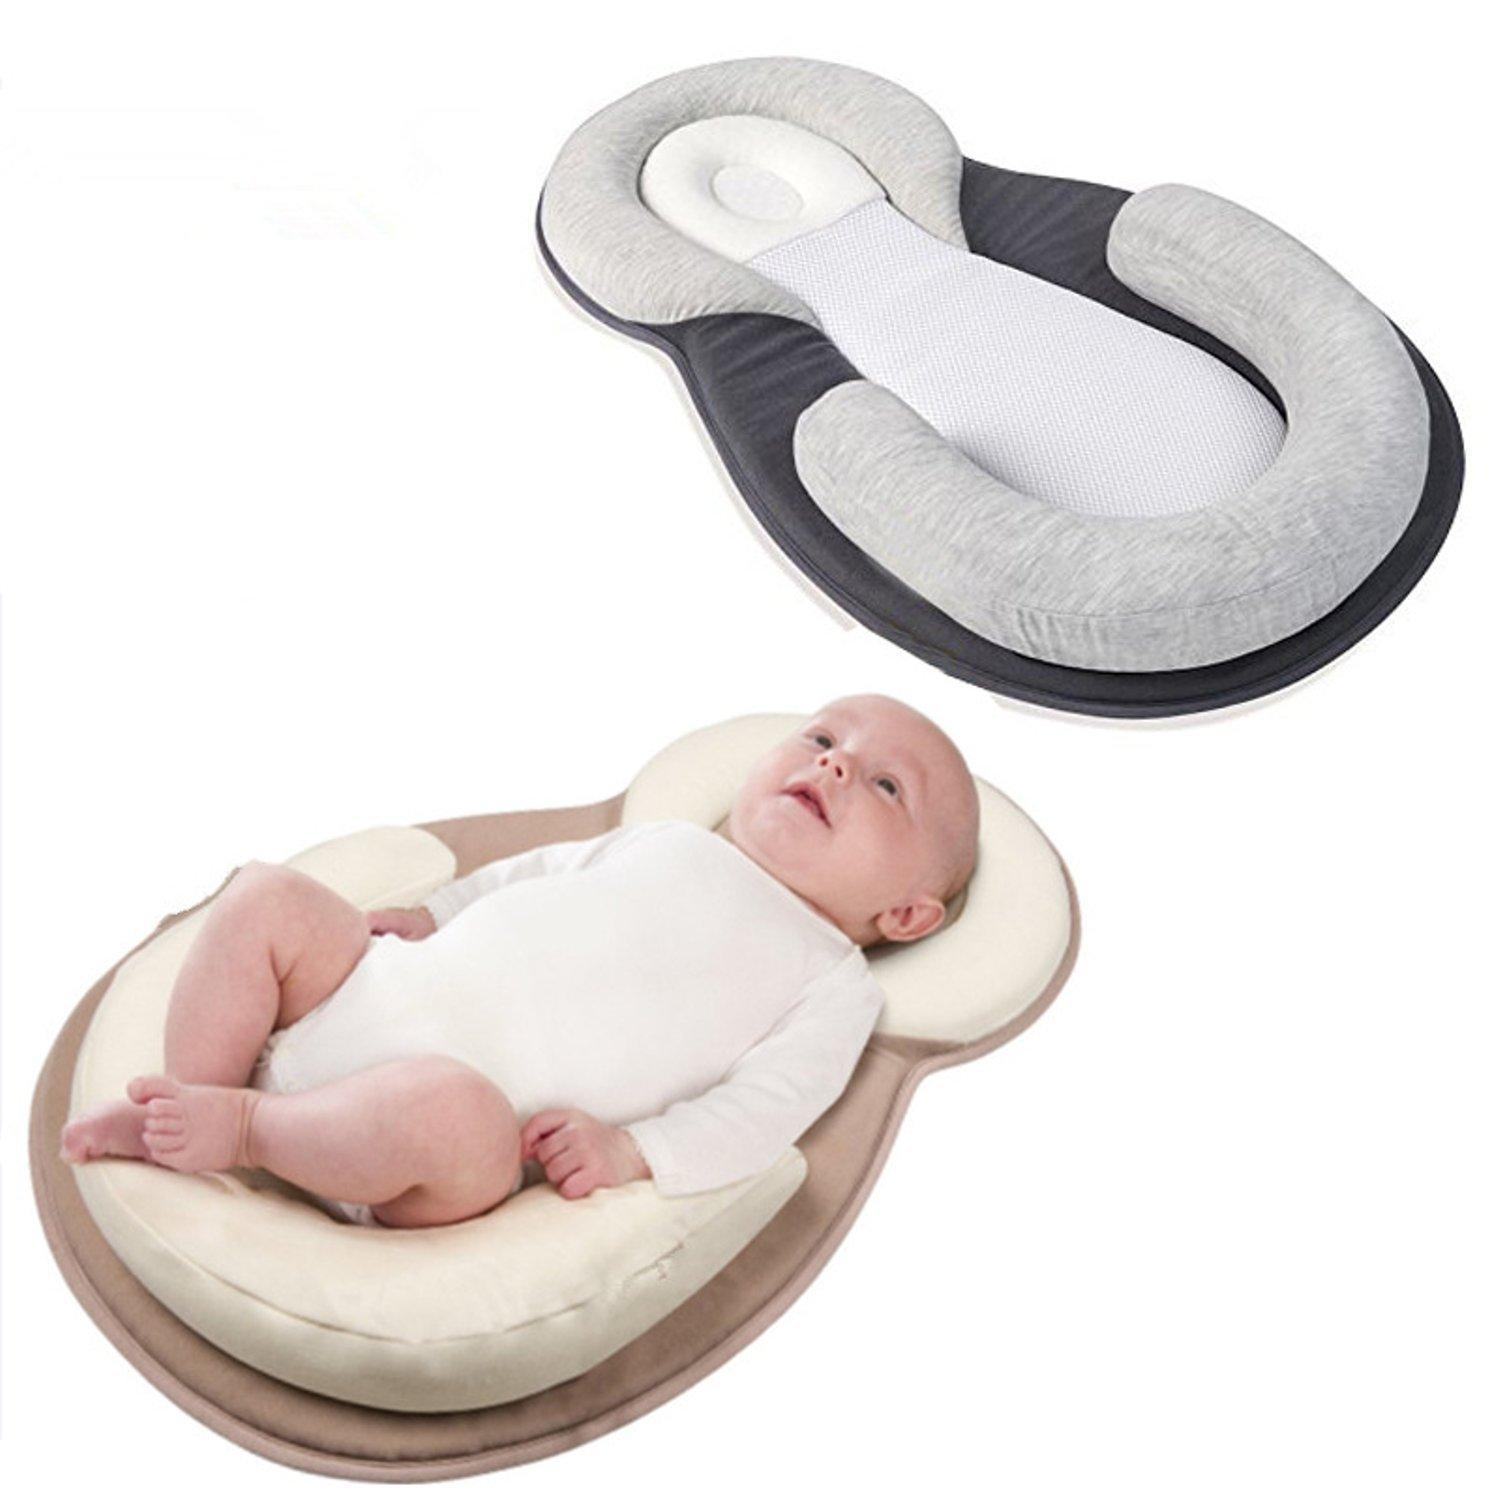 Infant corretta anti emicrania Infant Cuscino Dormire Pillow Ding Wei Zhen bambino Cuscino Anti-Overflow Latte